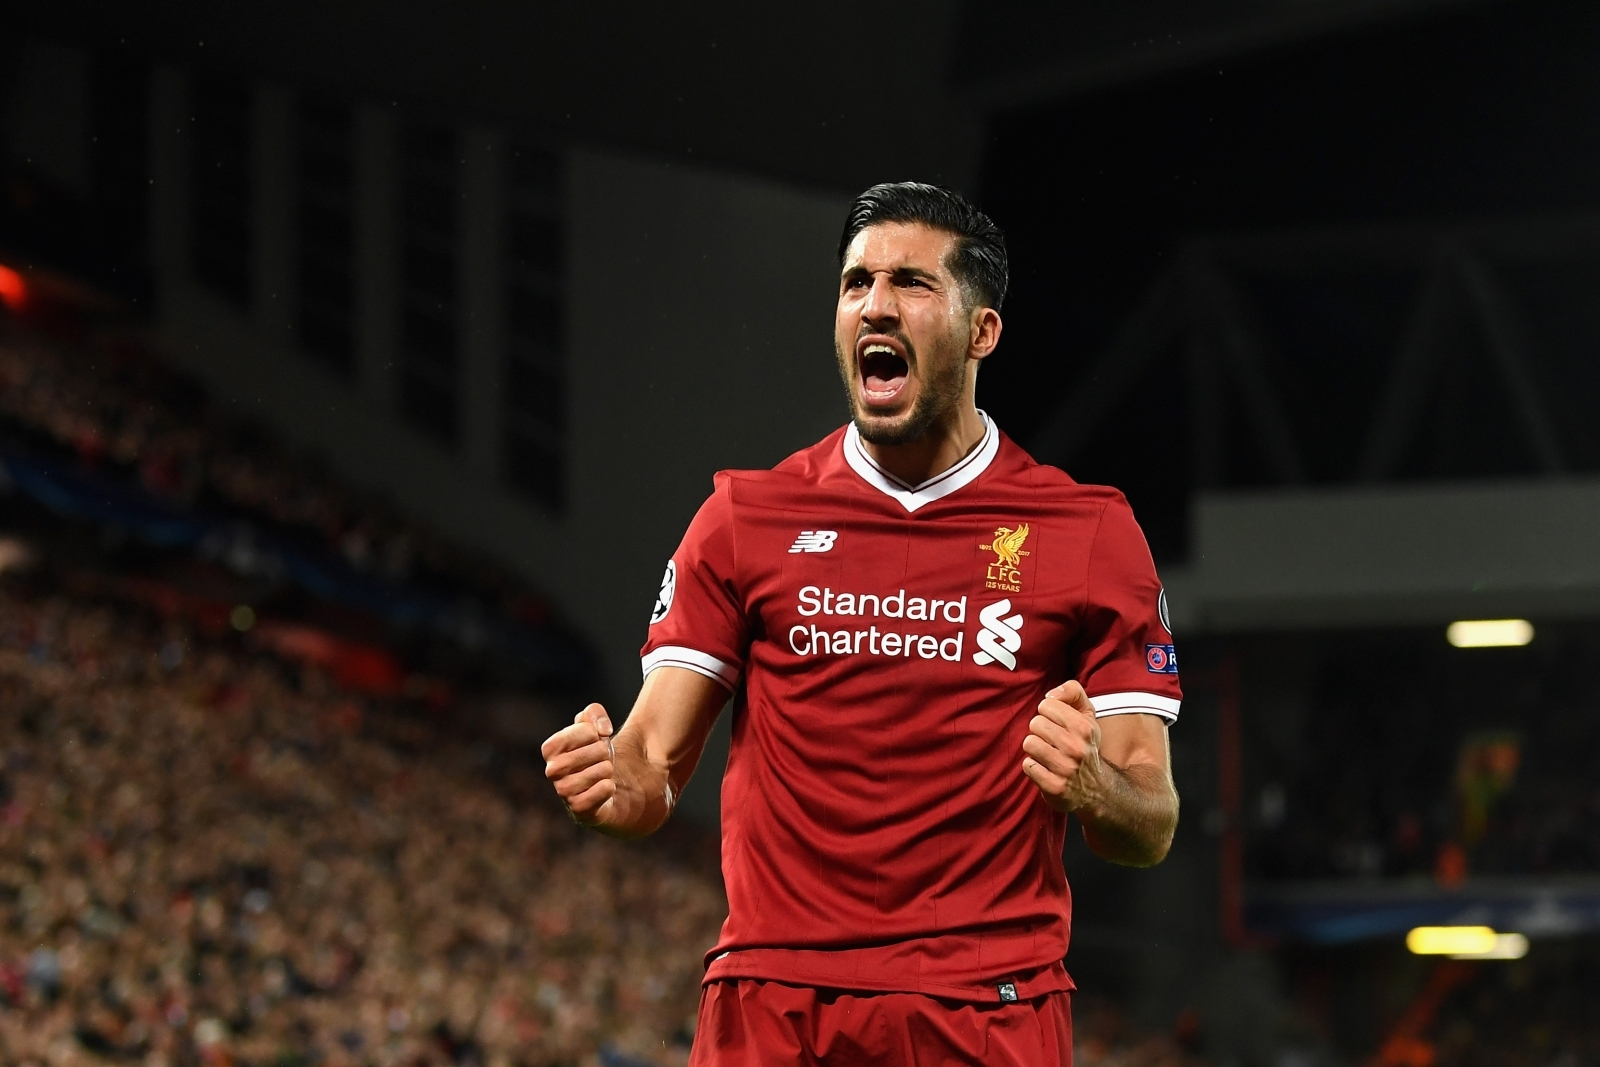 Long Term Loan >> Liverpool midfielder Emre Can 'agrees deal' with Juventus ahead of summer transfer